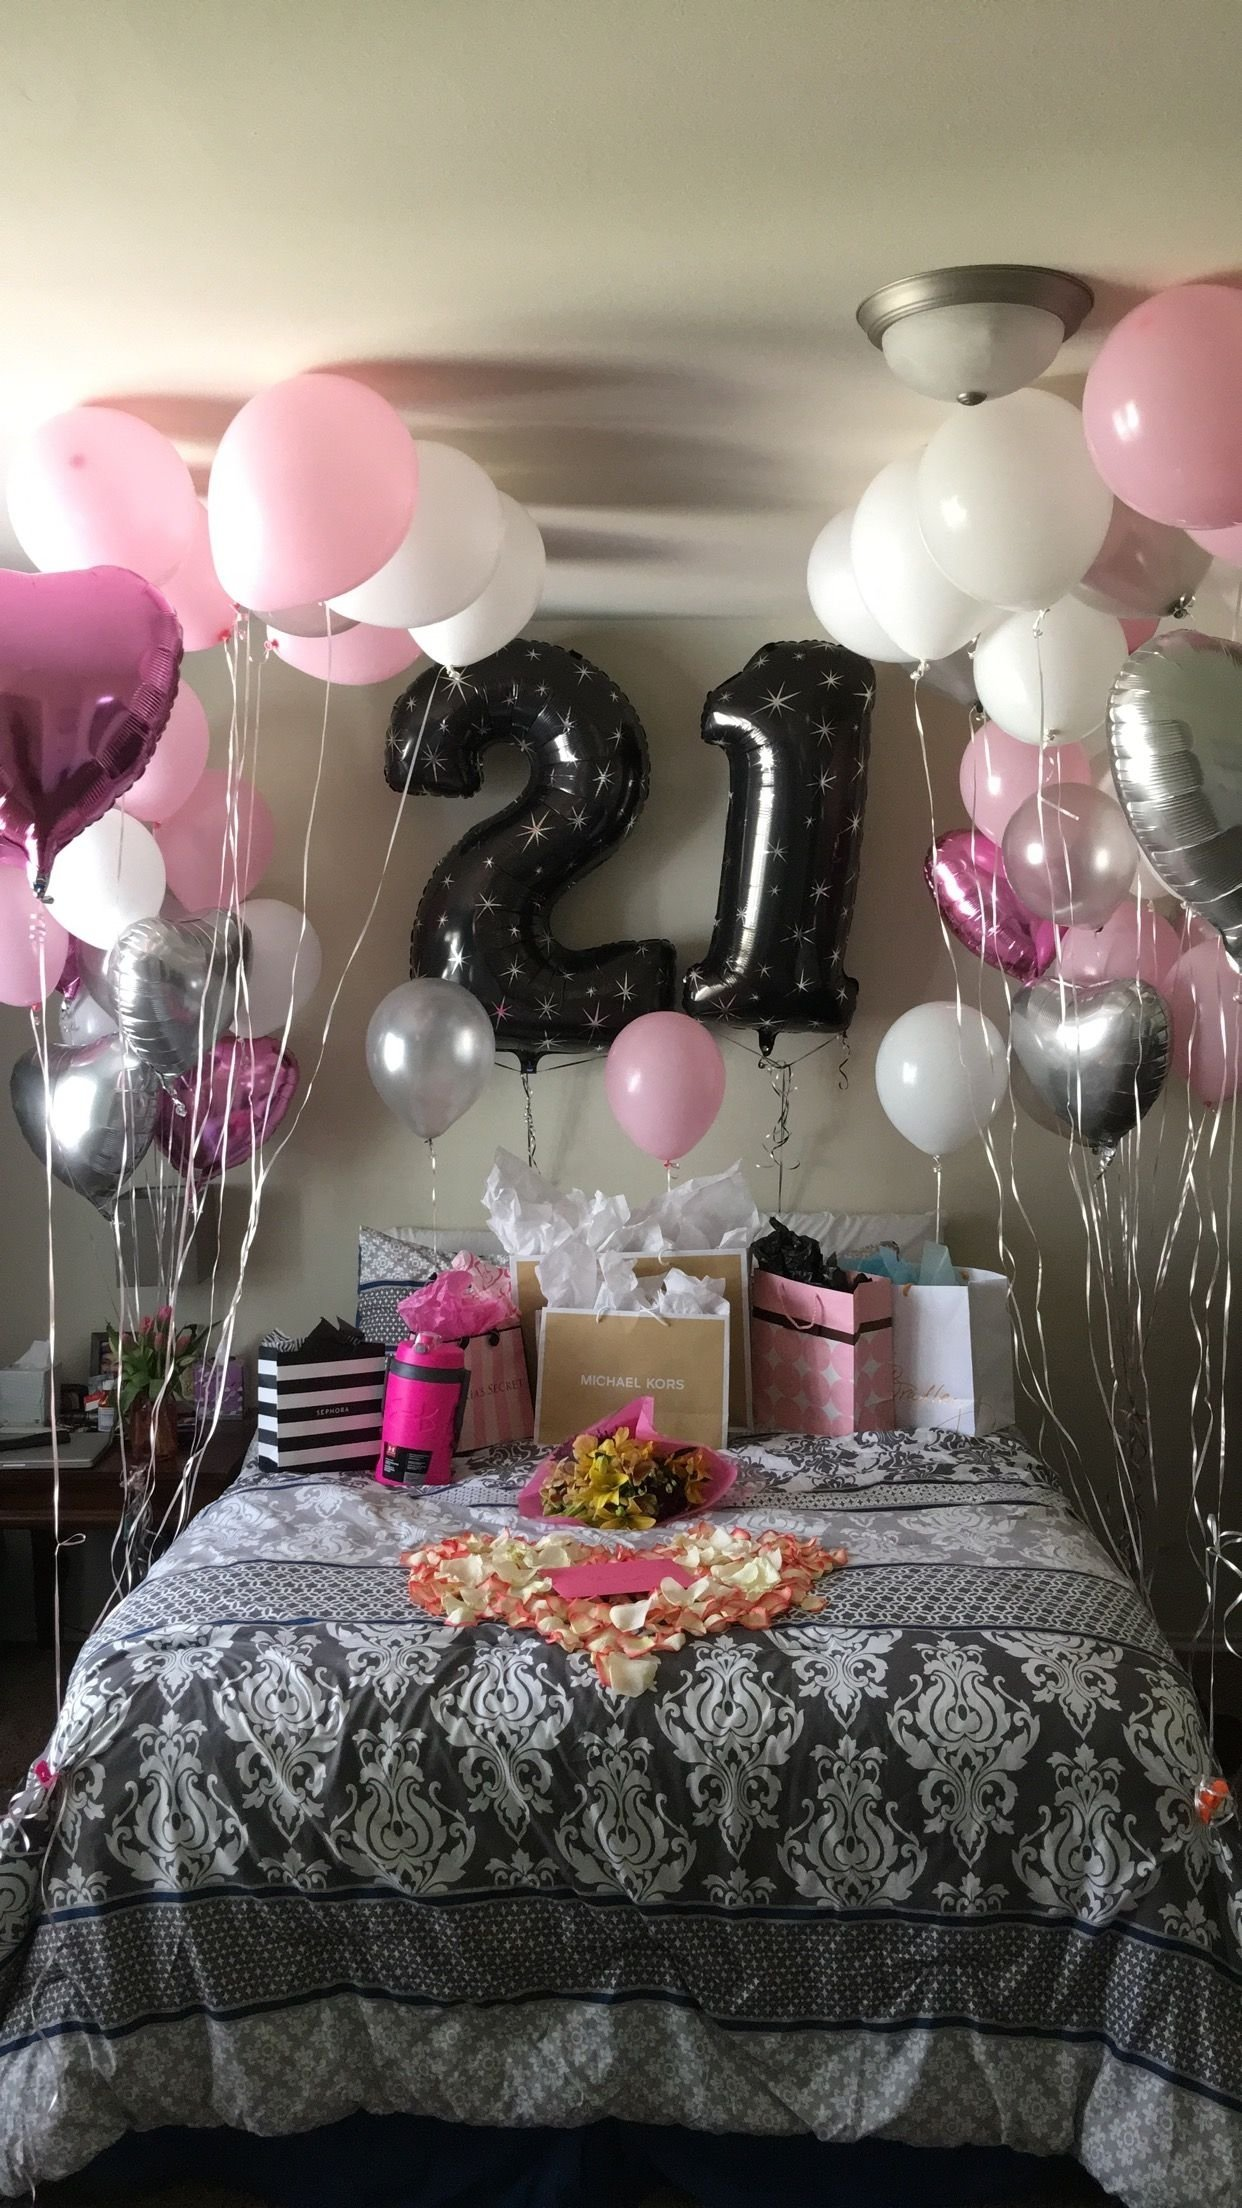 10 Attractive Surprise Birthday Party Ideas For Adults 21st birthday surprise girlfriends birthday pinterest 21st 3 2020